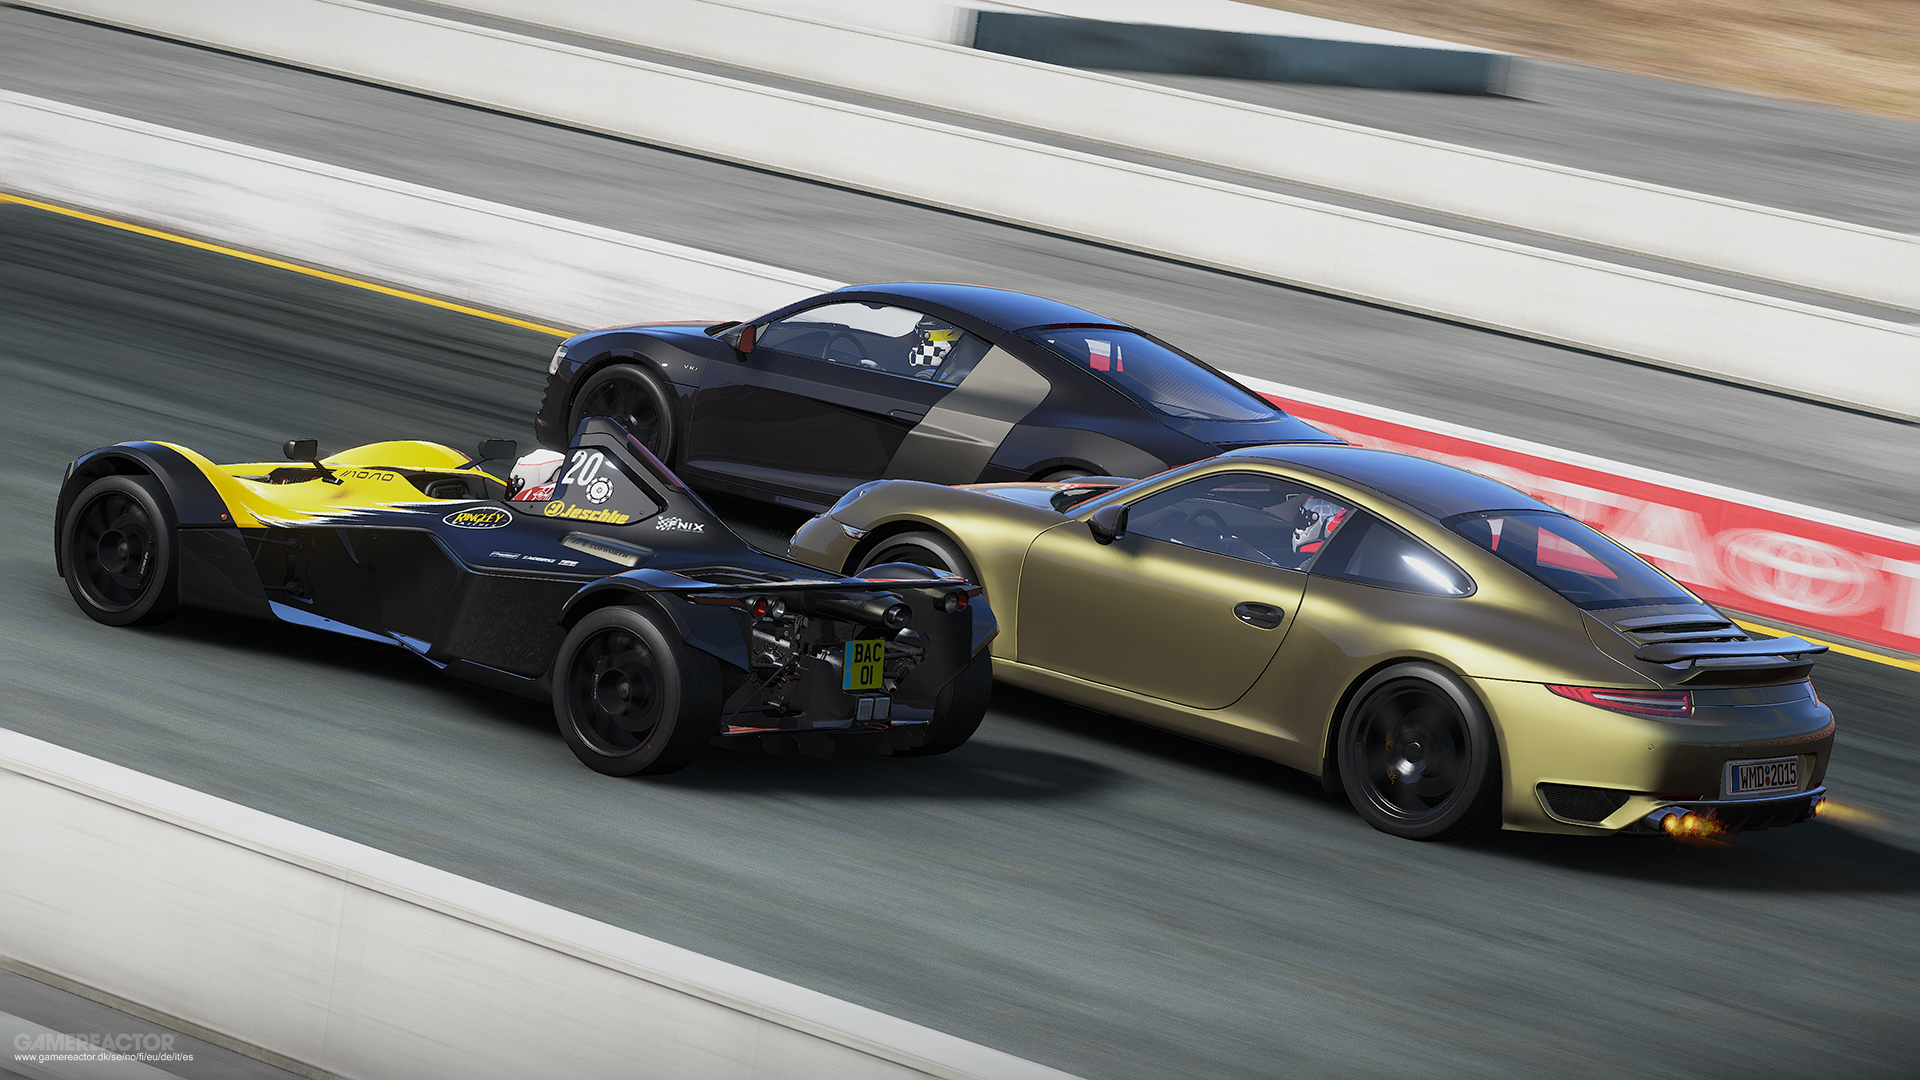 pictures of project cars complete car list revealed 2/11